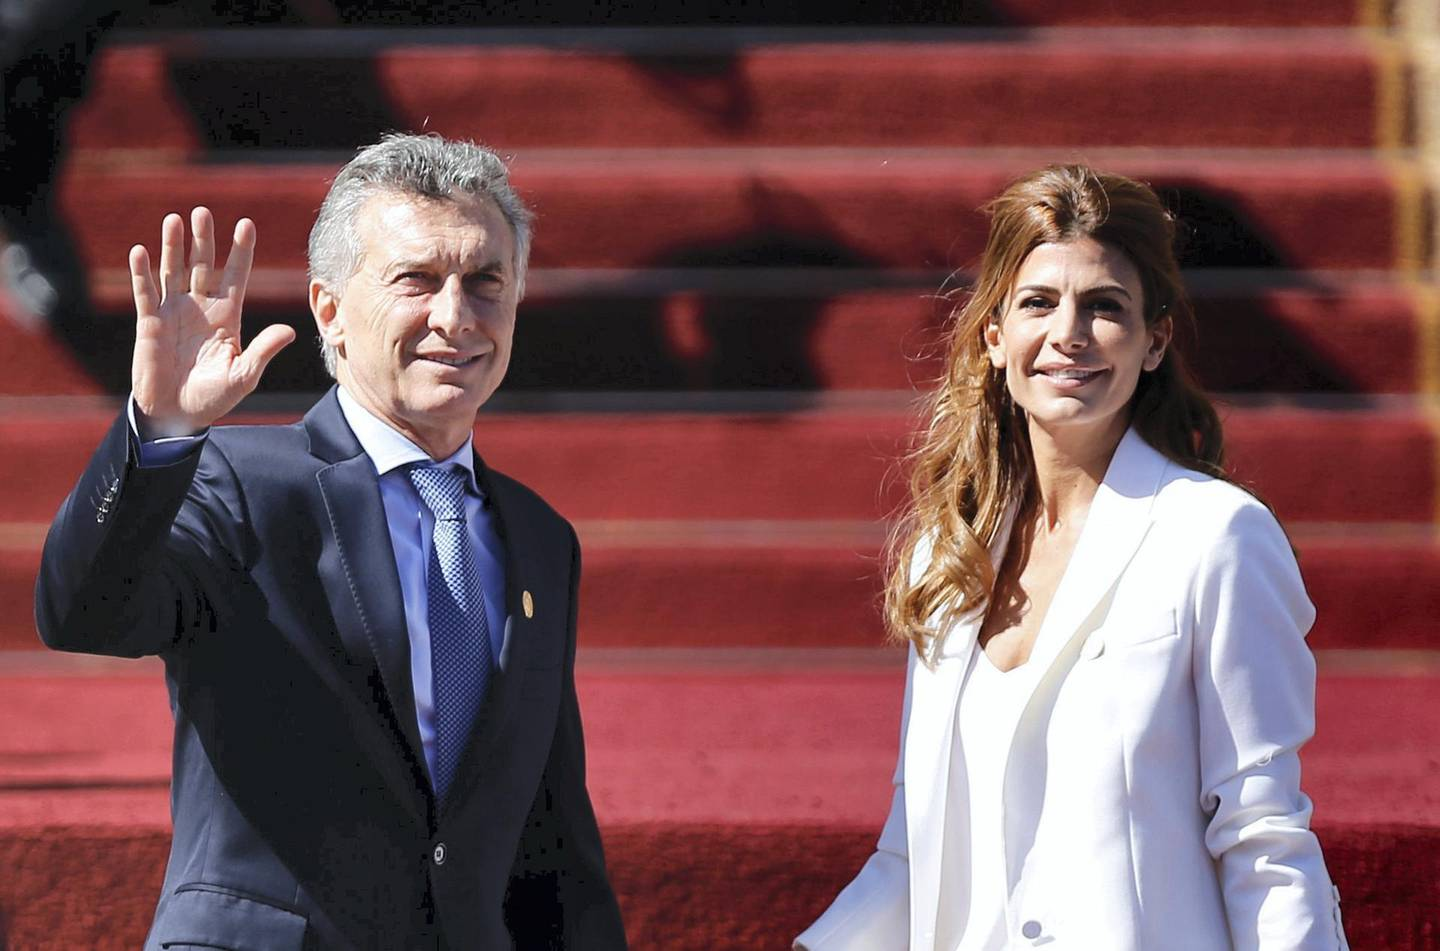 Argentine President Mauricio Macri (L) and First Lady Juliana Awada arrive at the Congress in Valparaiso, Chile, for the inauguration of Chile's new president Sebastian Pinera, on March 11, 2018. / AFP PHOTO / PABLO VERA LISPERGUER